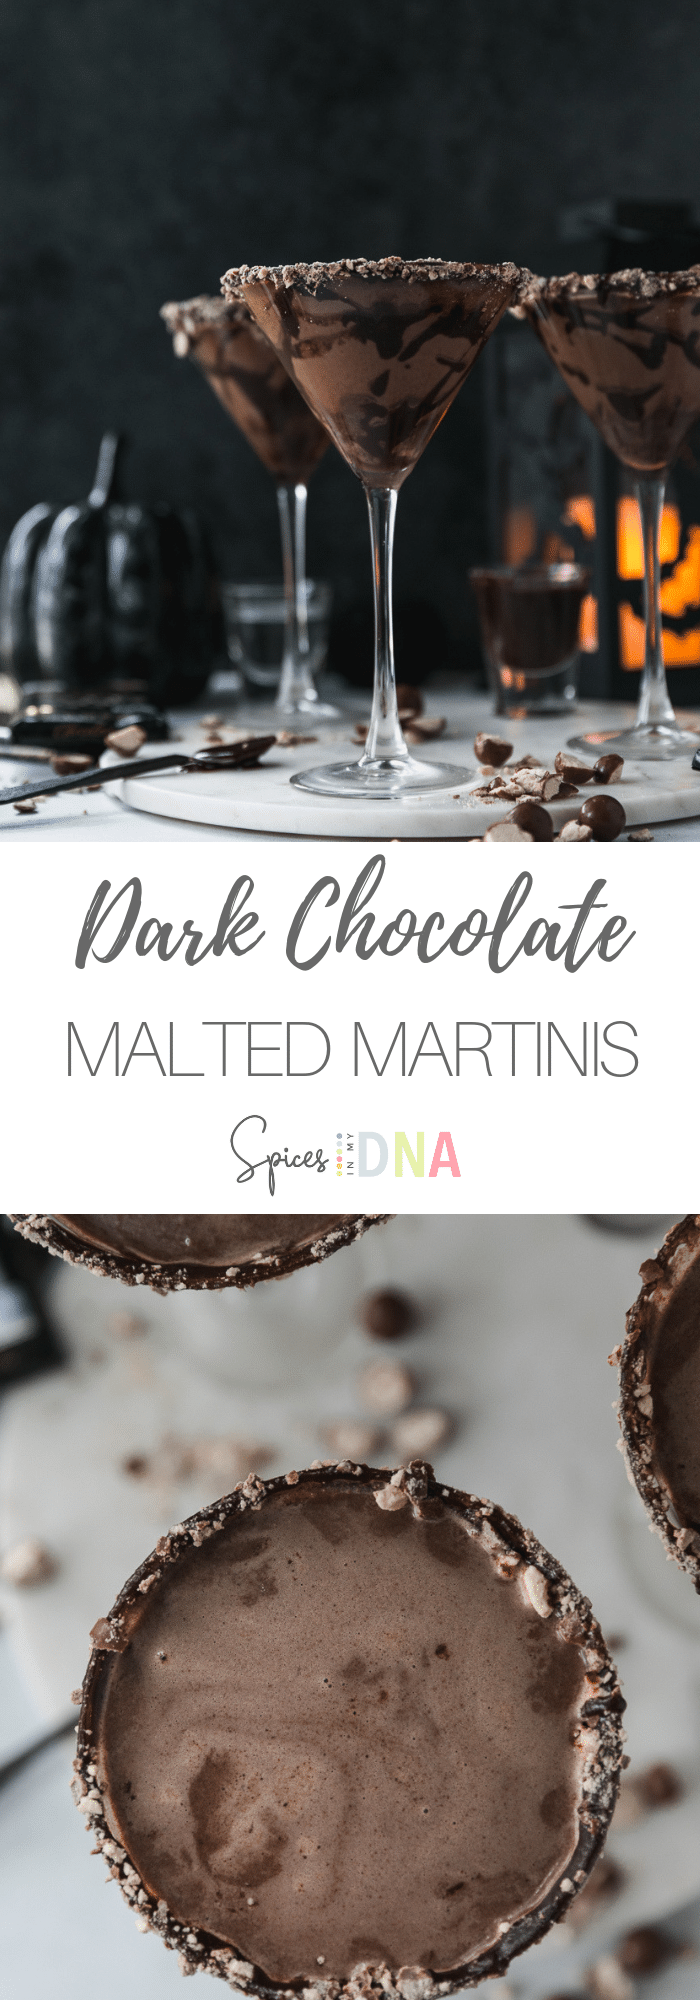 These Dark Chocolate Malted Martinis are a perfect after dinner drink or fun cocktail to serve this holiday season! They're wonderful to make for Halloween, or for when you want a sweet treat! They're made with a homemade dark chocolate fudge sauce, chocolate malt powder, chocolate liqueur, and vodka! #darkchocolate #martini #cocktail